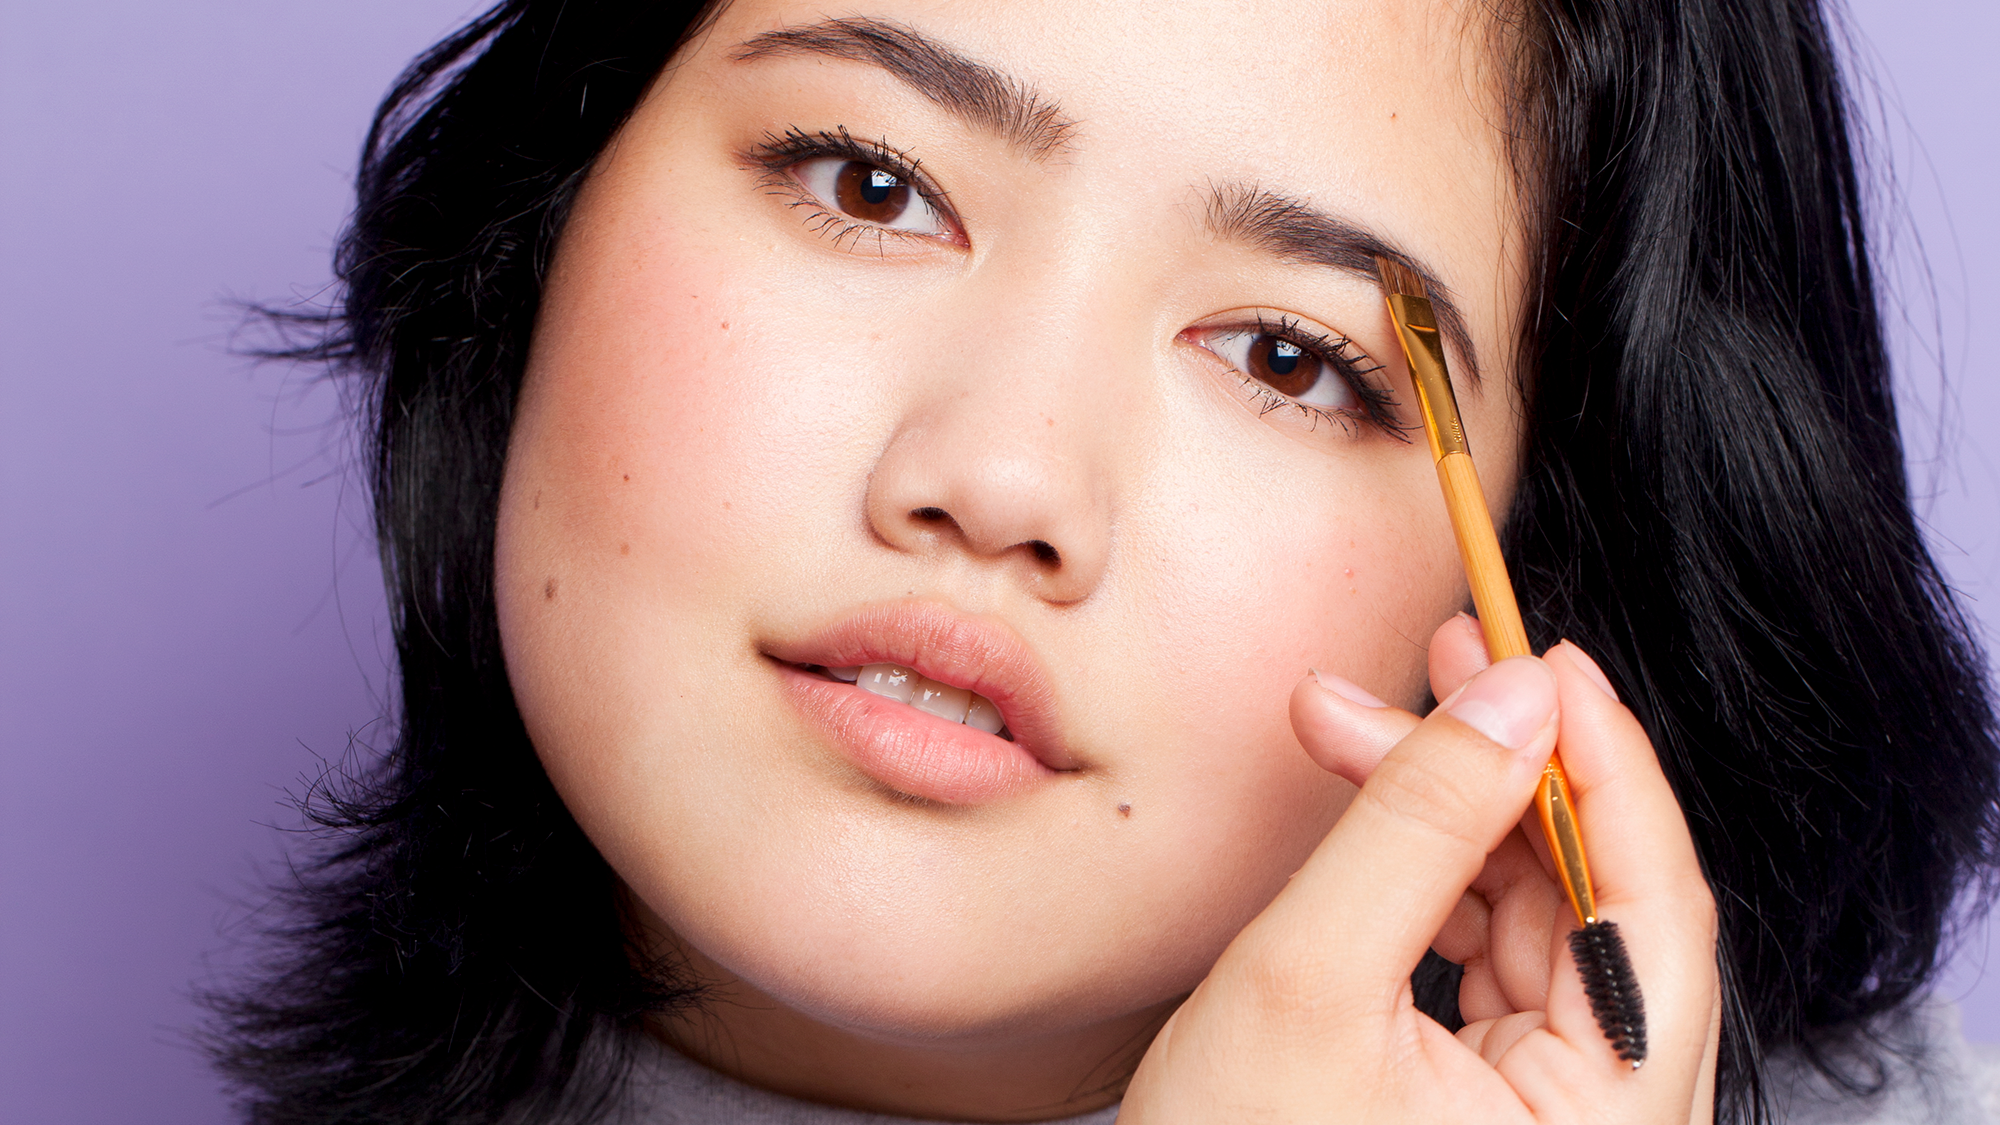 This Woman Used A Surprising Drugstore Product On Her Brows — & It's Genius